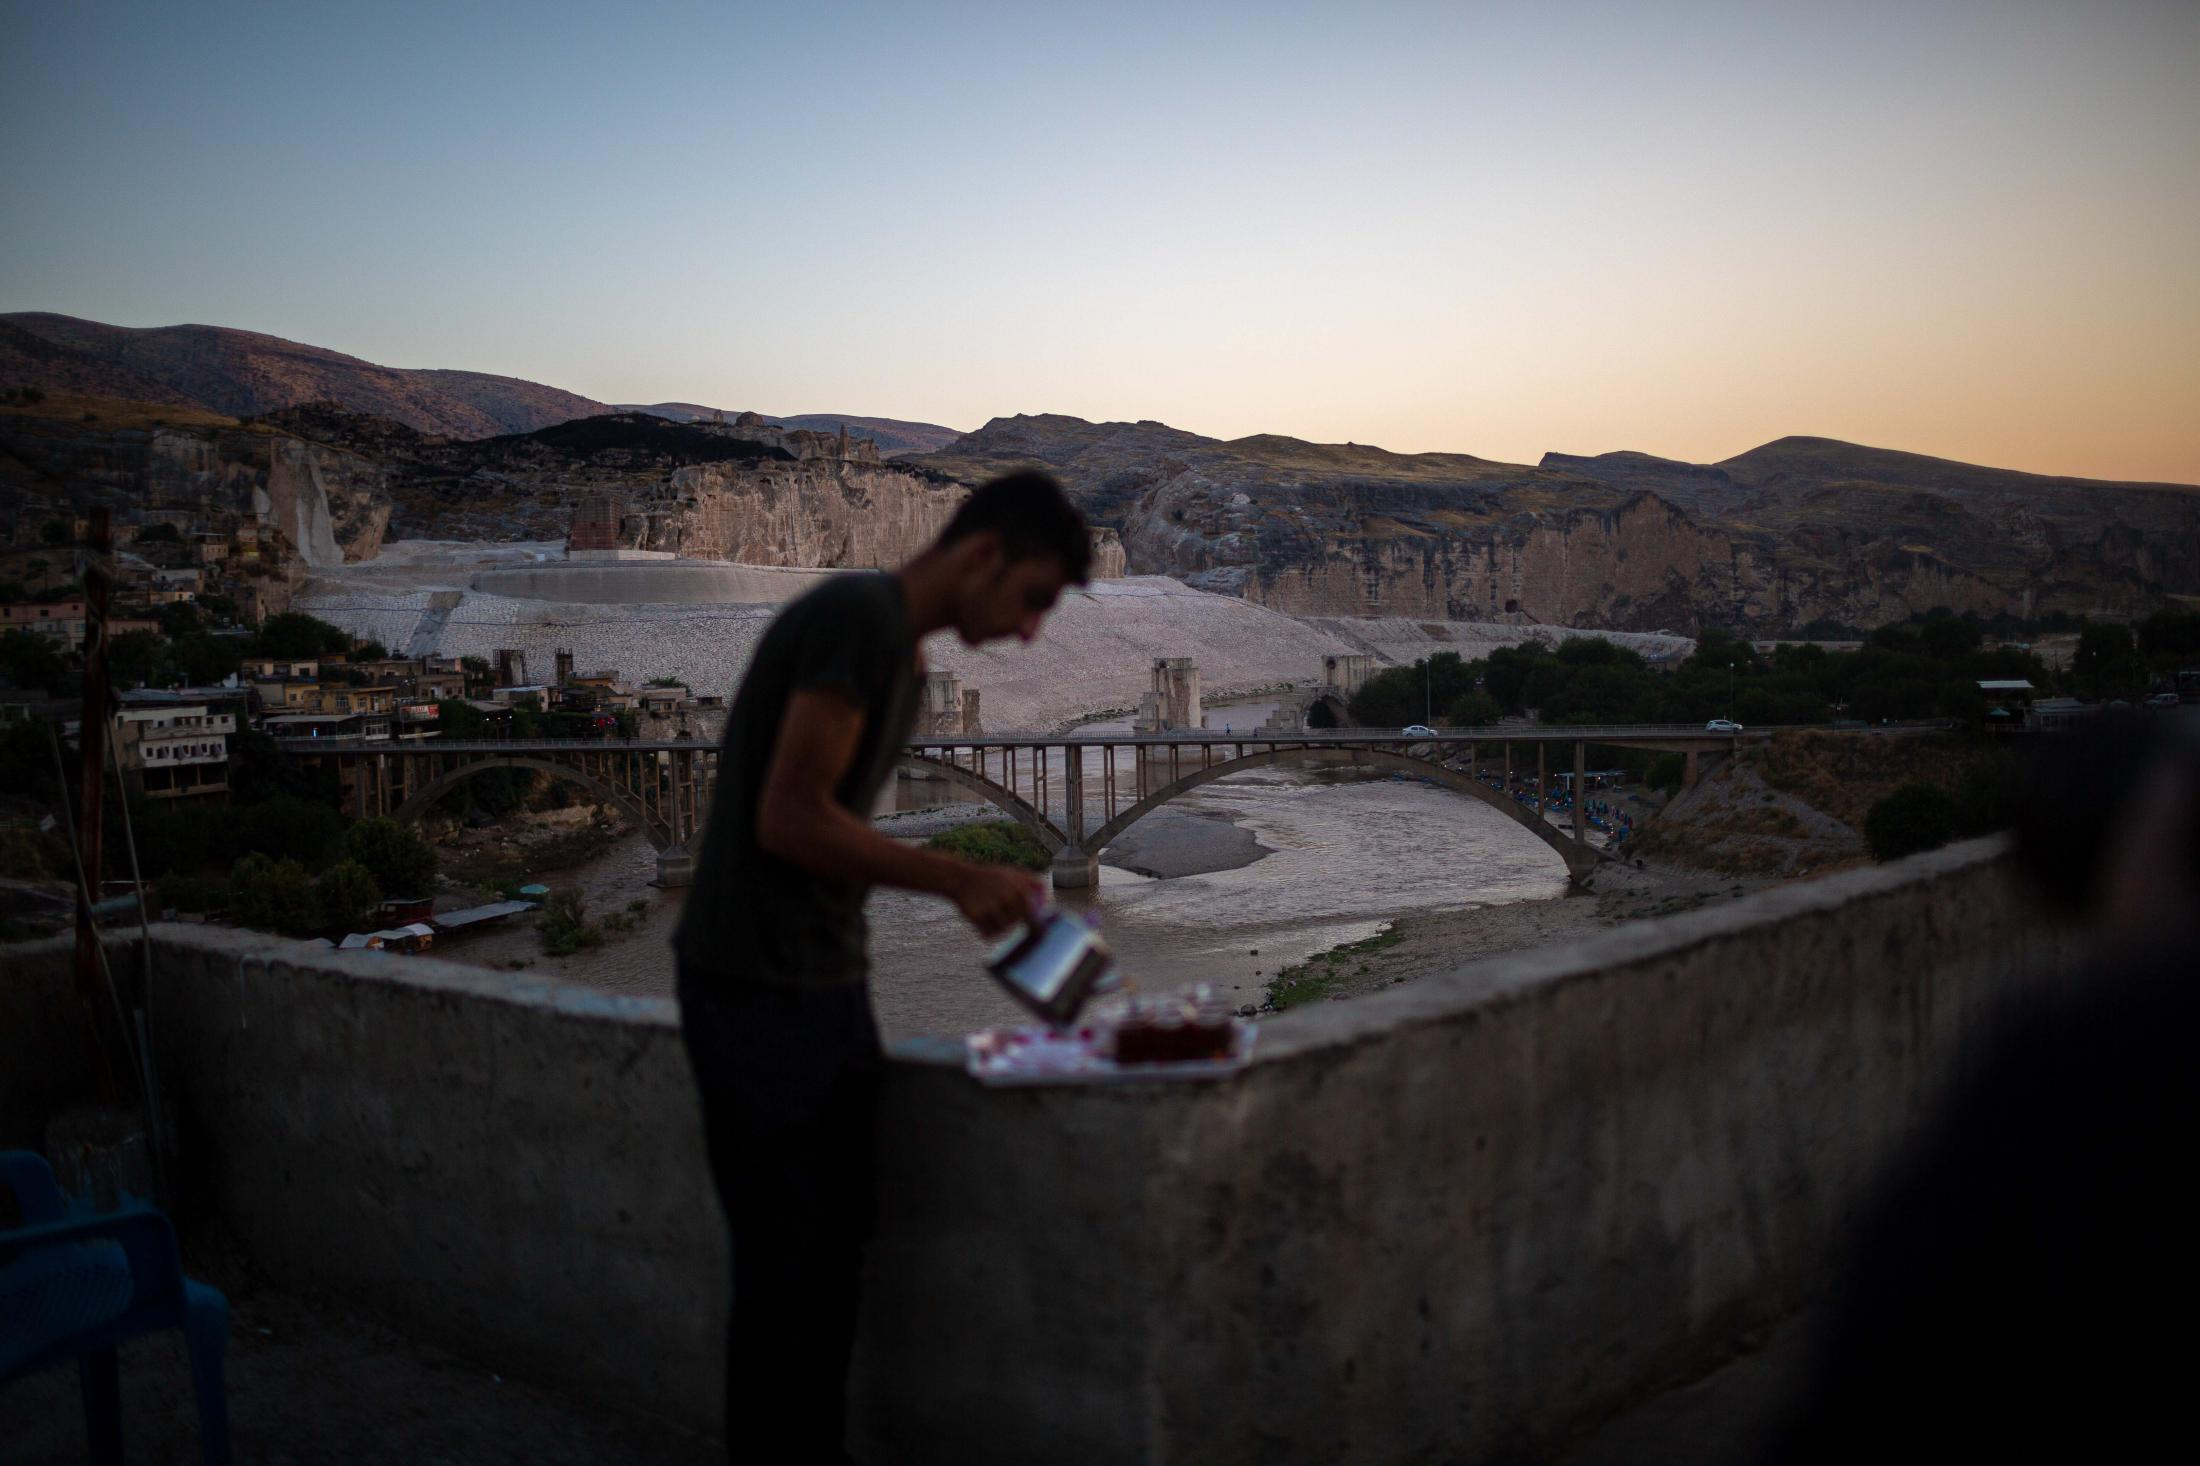 Art and Documentary Photography - Loading 020.18.08082019-NT-Hasankeyf-Turkey-042.jpg